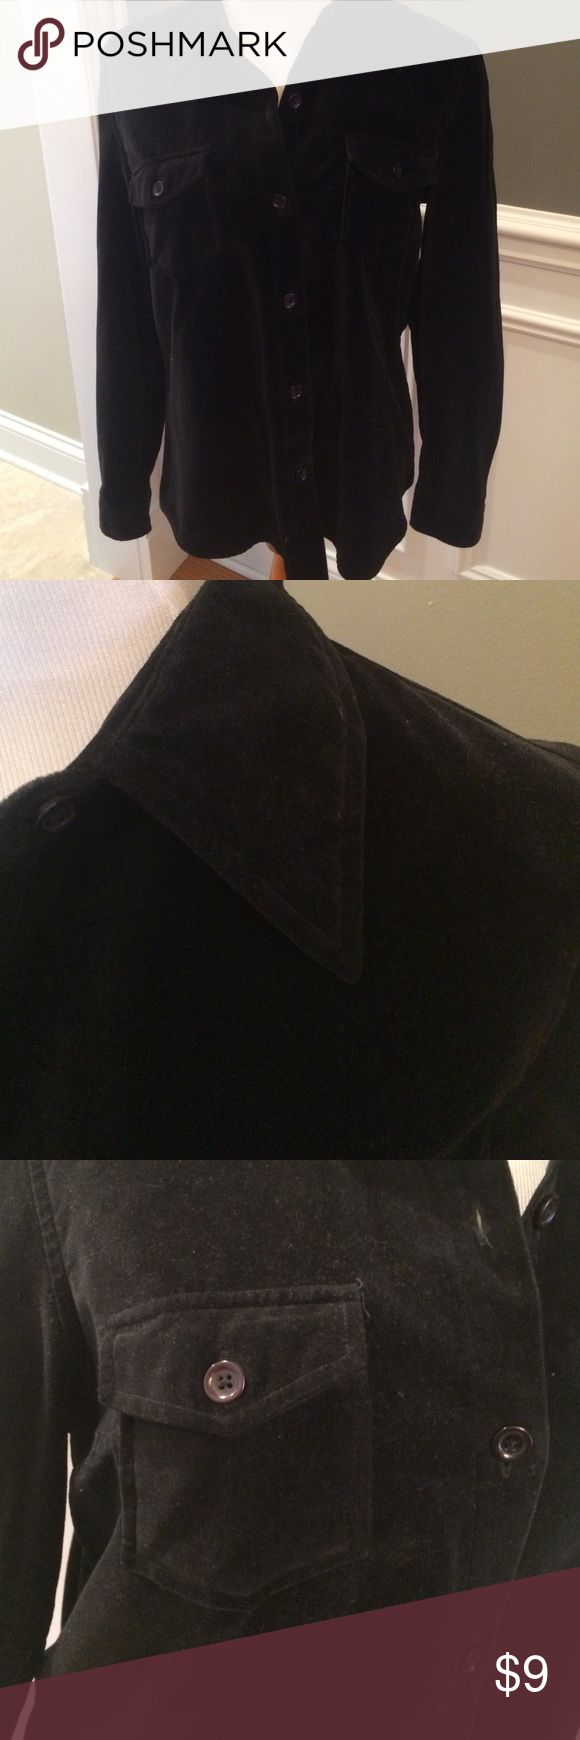 Gap top Black gap button-down shirt, has velvet like texture. In very good condition. Smoke and pet free home. GAP Tops Button Down Shirts